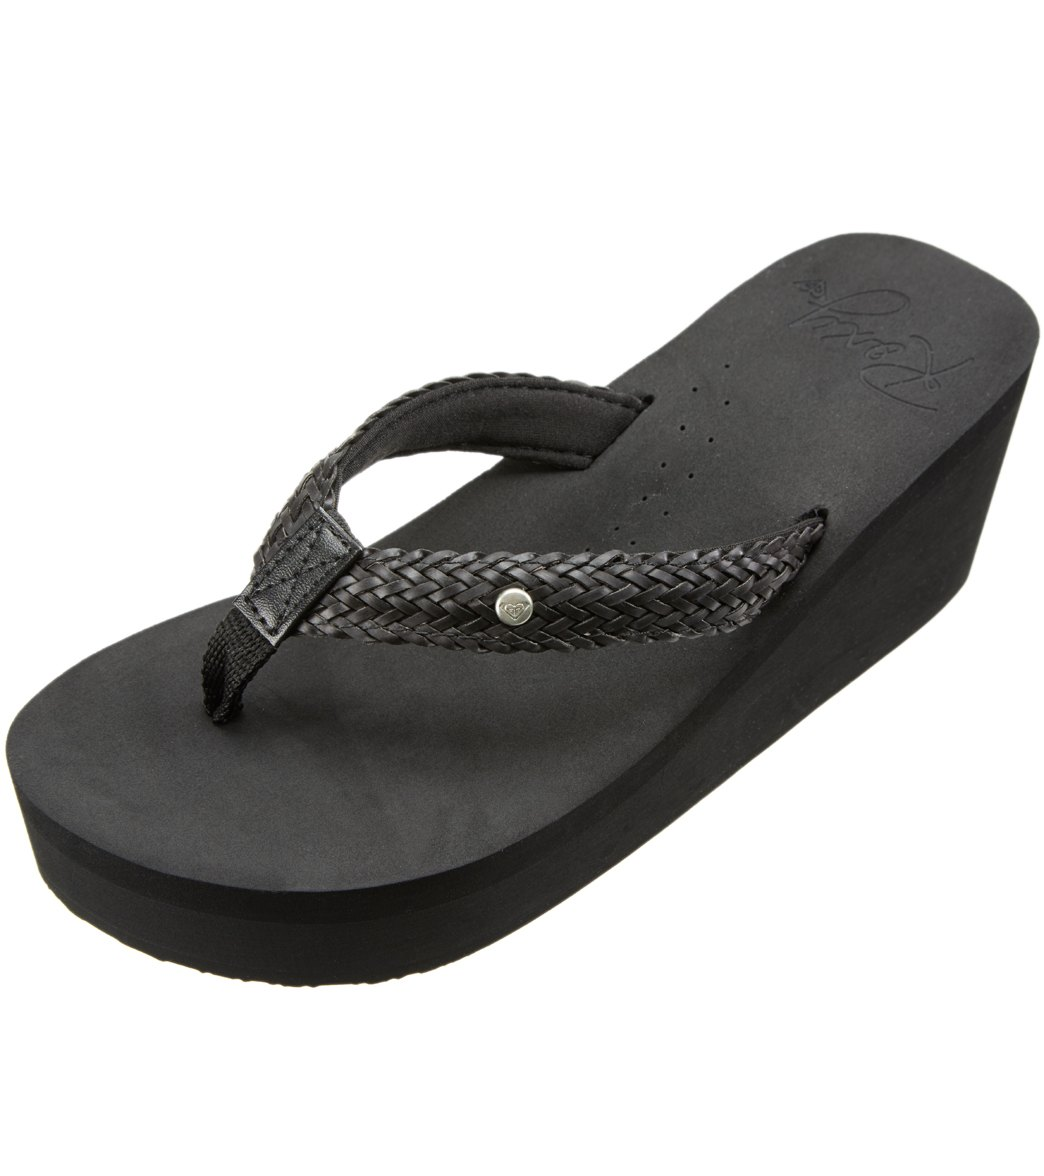 32421231f9e1 Roxy Women s Mellie II Wedge Flip Flop at SwimOutlet.com